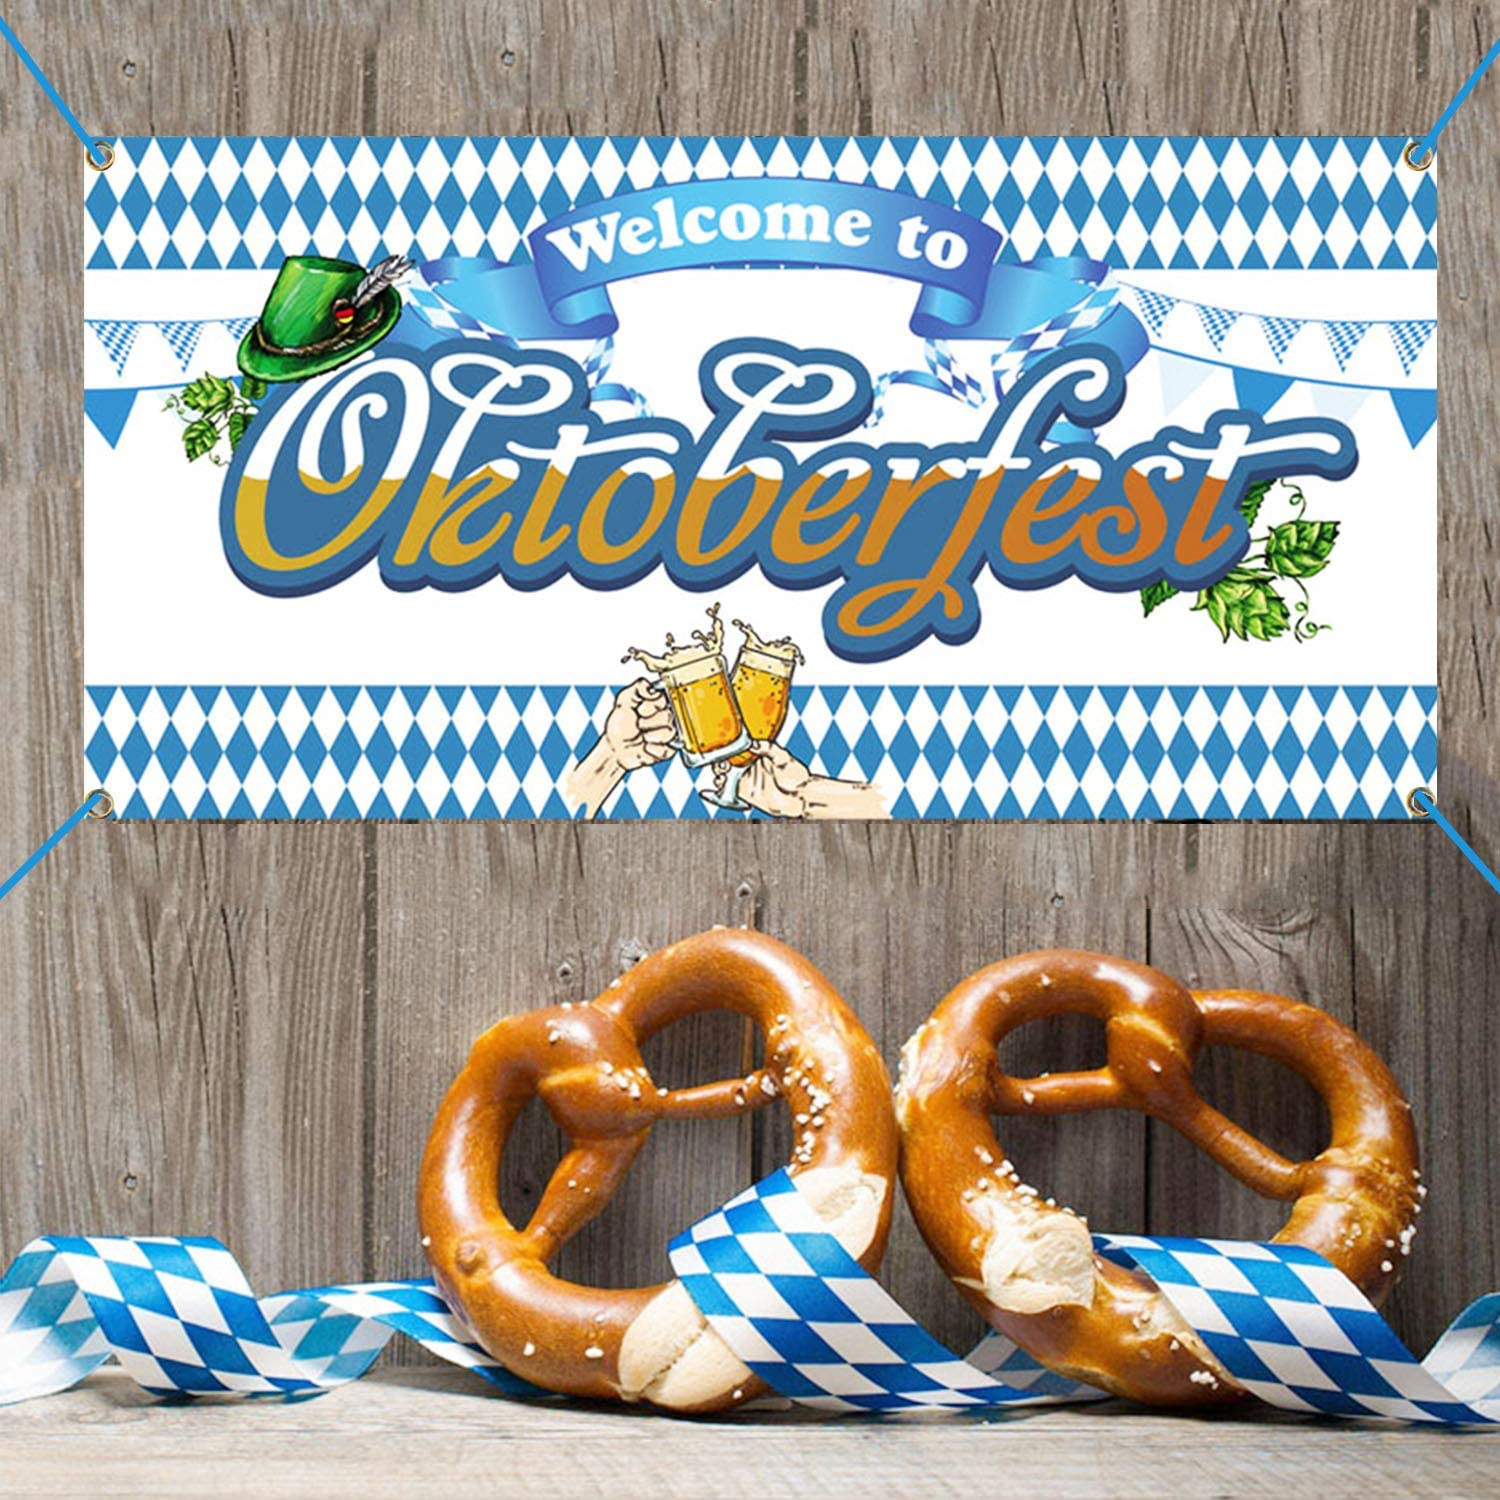 Oktoberfest Party Banner Decorations,Beer Festival Party Supplies Oktoberfest Blue Hanging Wall Banner 2020 for Indoor/Outdoor(70.86''x35.82'')